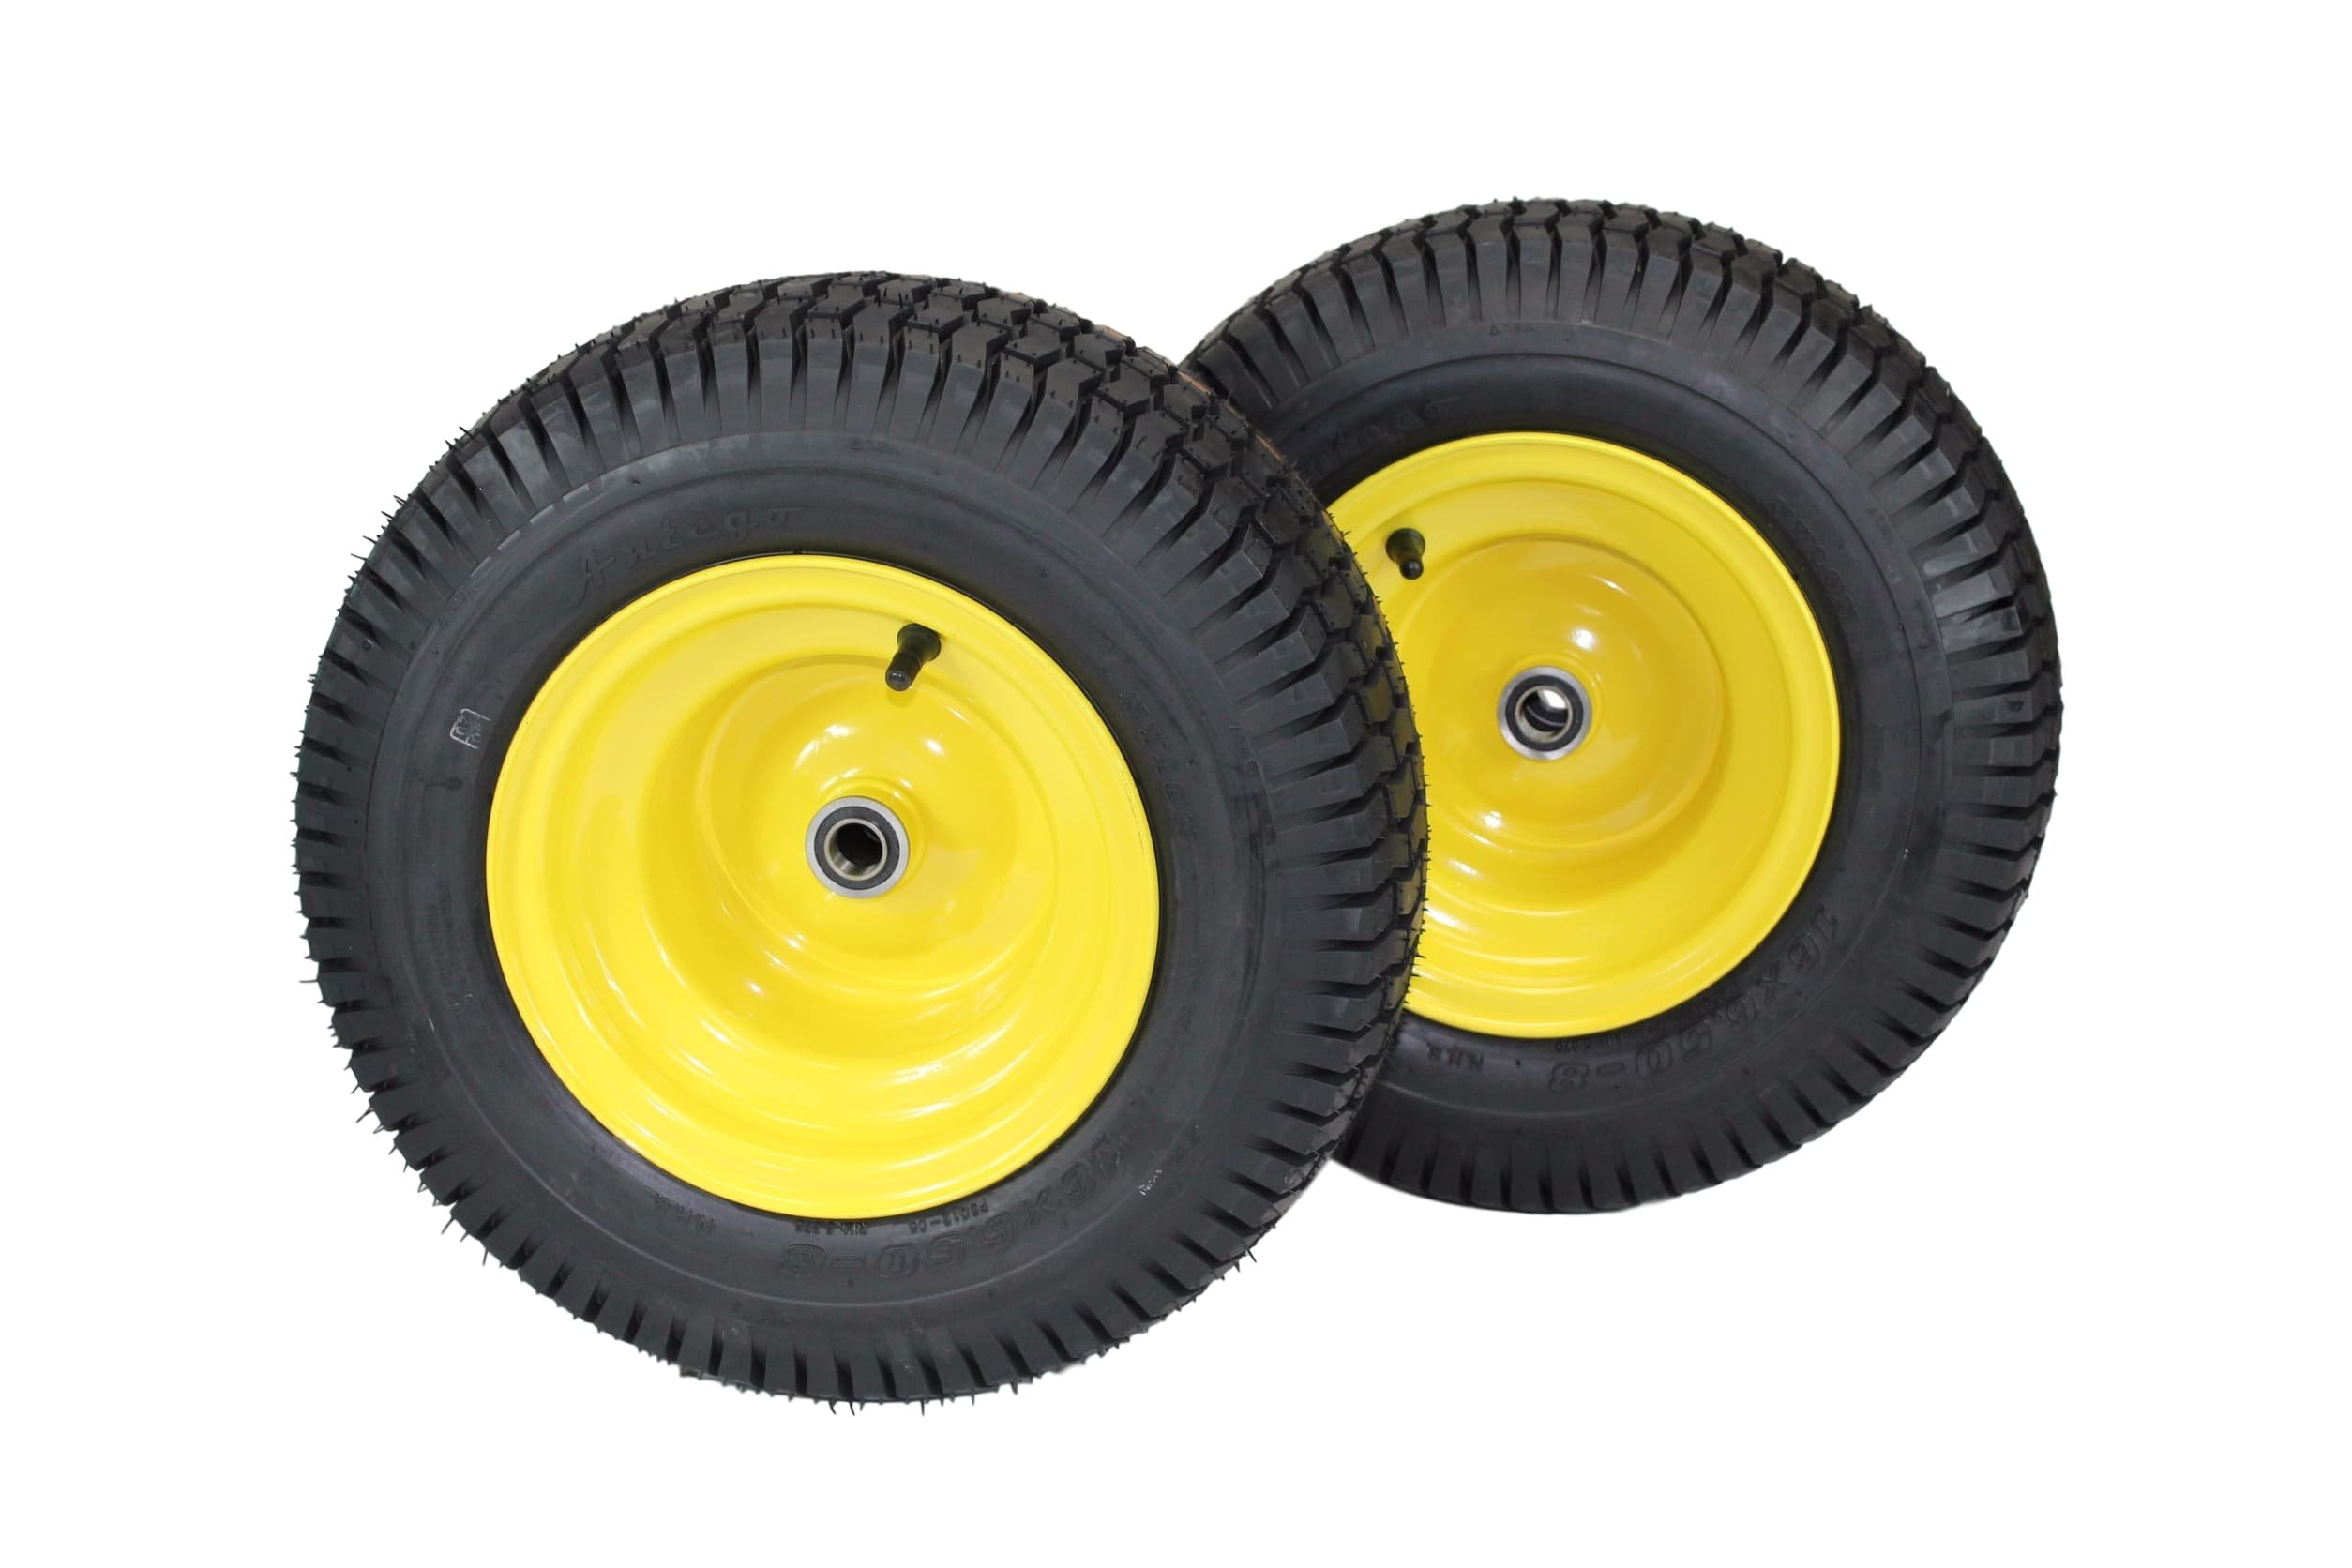 (Set of 2) 16x6.50-8 Tires & Wheels 4 Ply for Lawn & Garden Mower Turf Tires .75'' Bearing by Antego